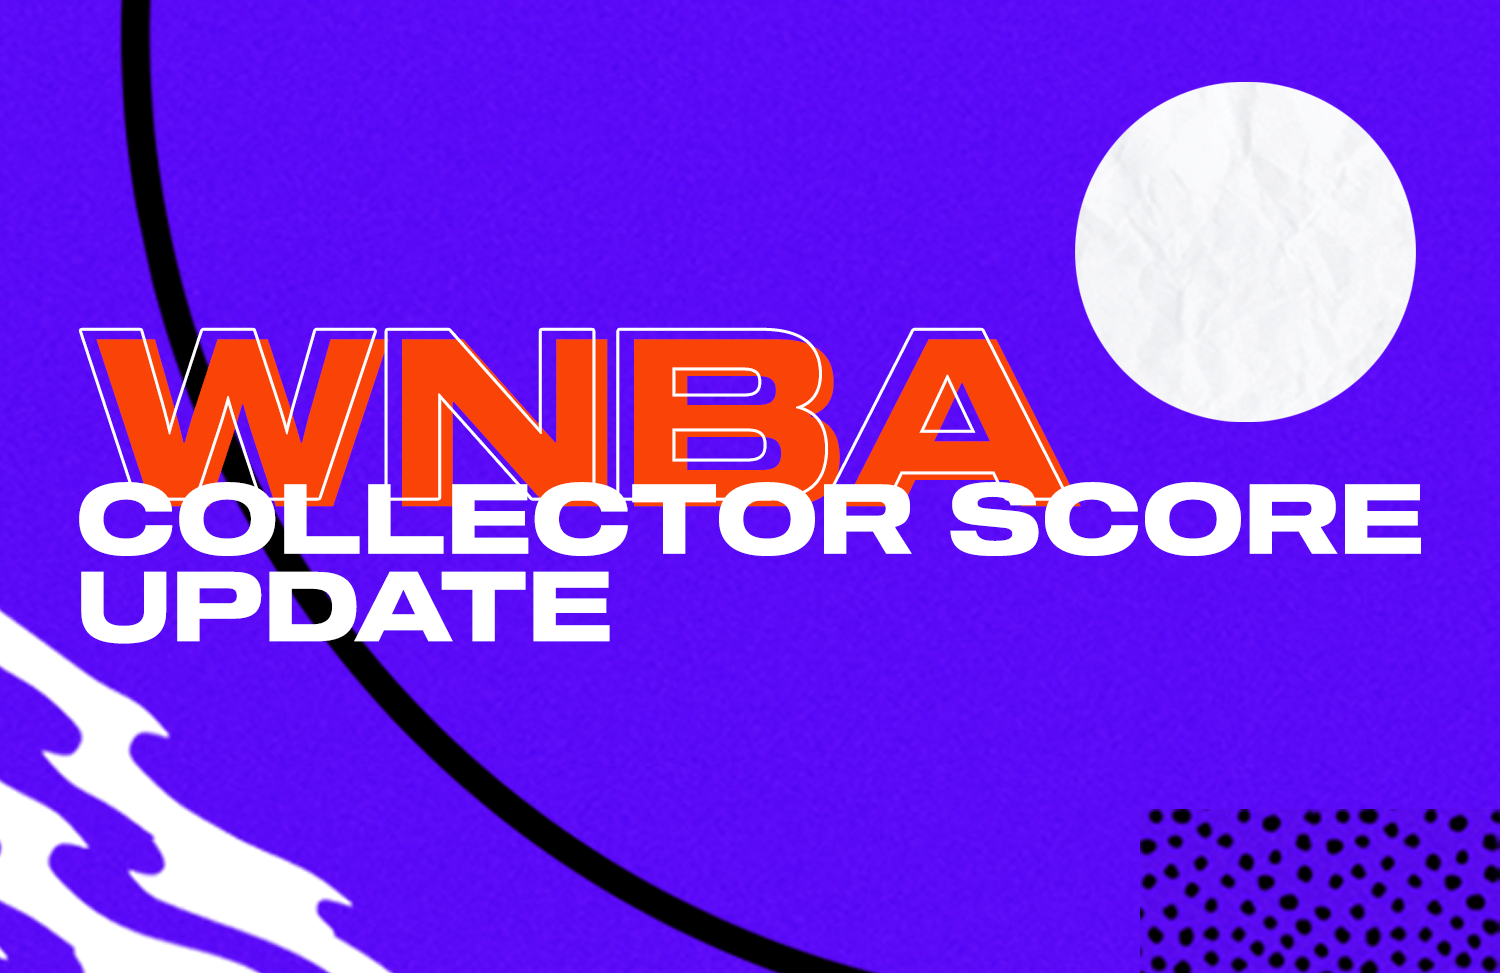 We have upgraded the Collector Score values for WNBA Common Moments to give them the recognition they deserve.